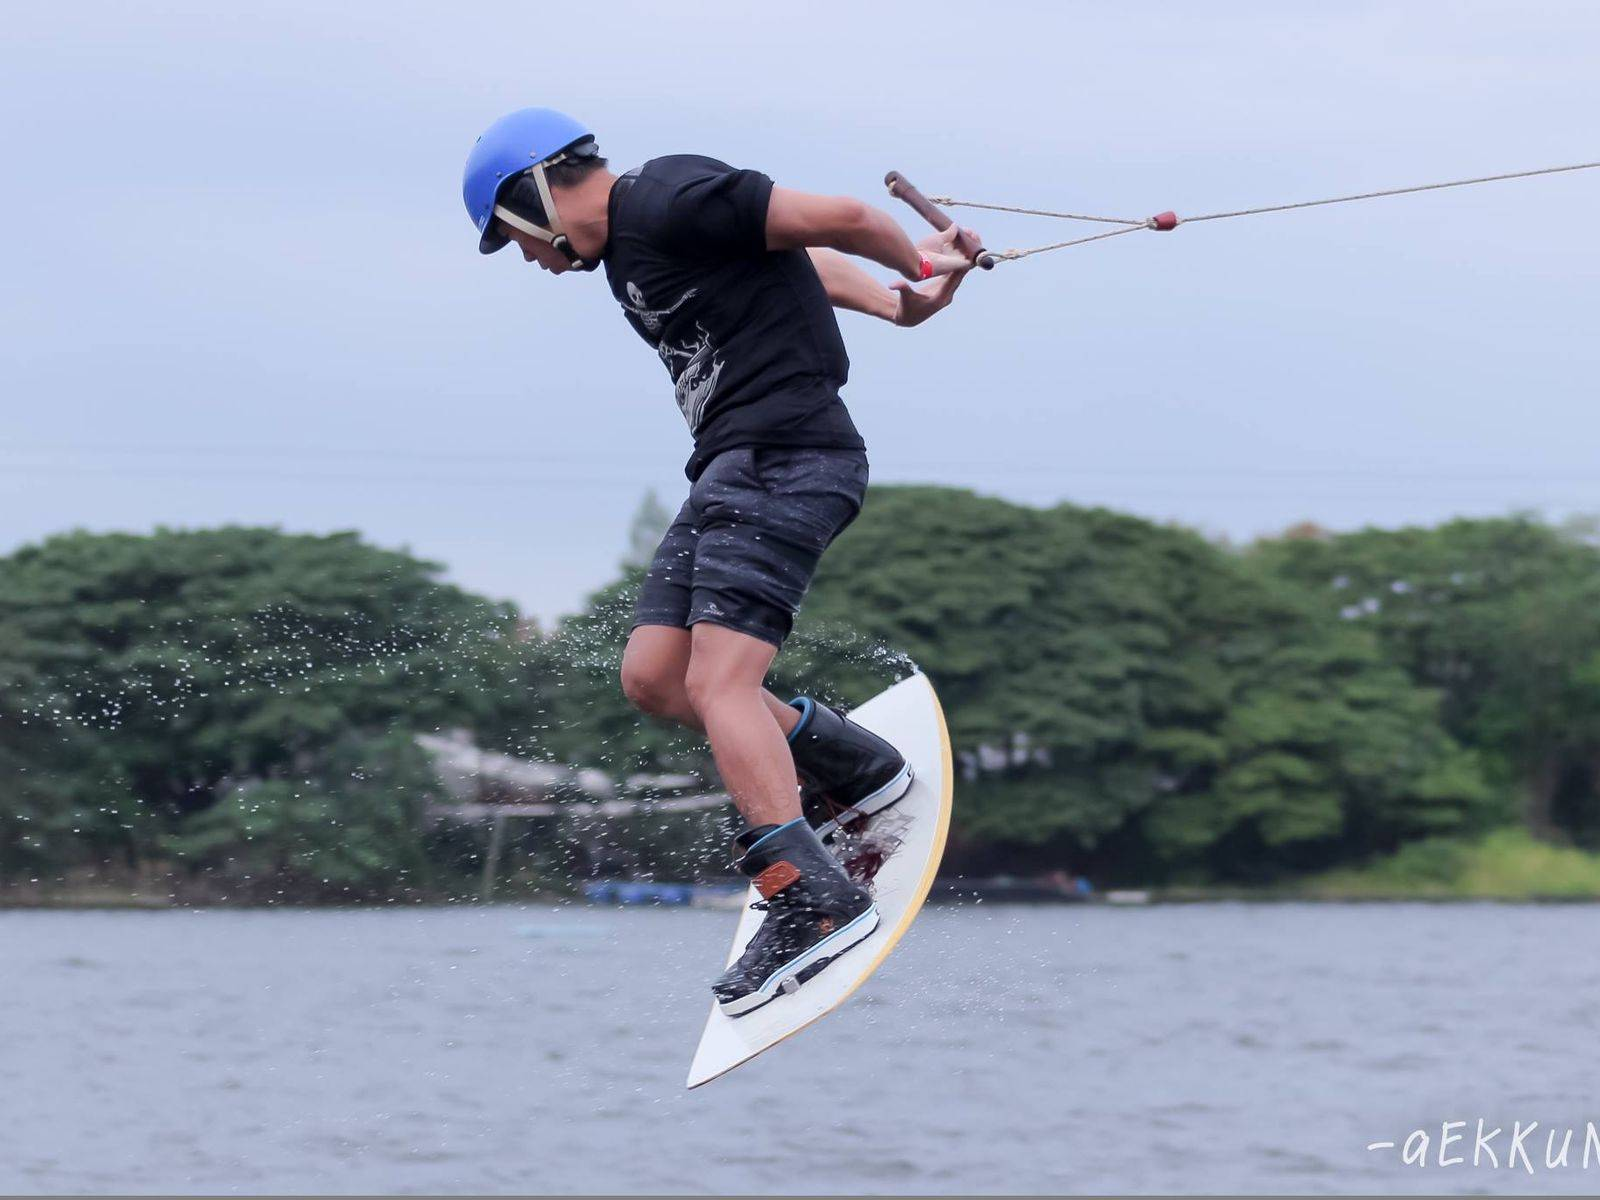 Challenge yourself with Wakeboarding!